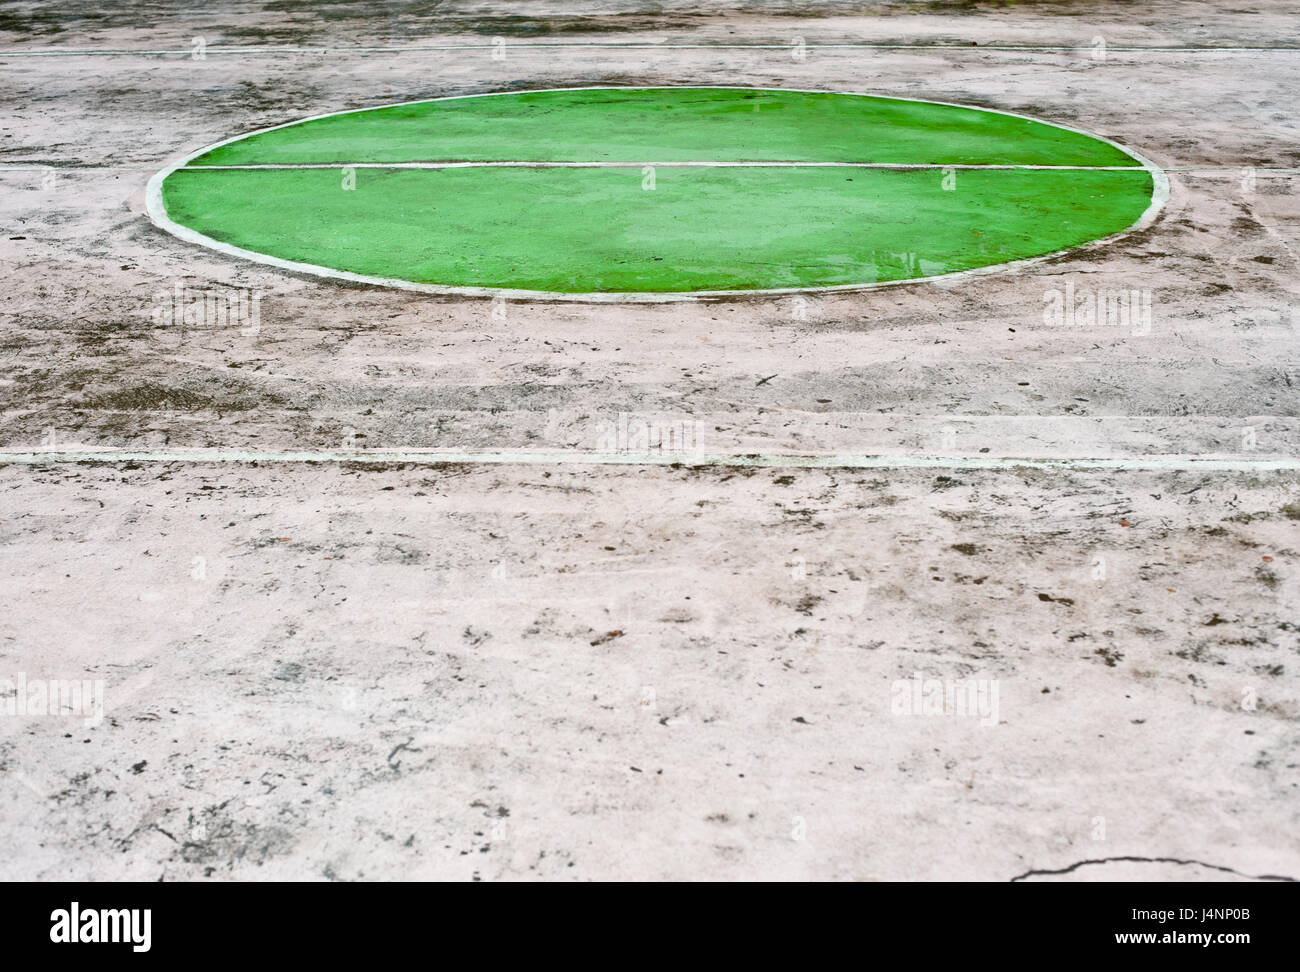 Abstract sports floor showing markings colorful for different games, multi-sport painted on court - Stock Image